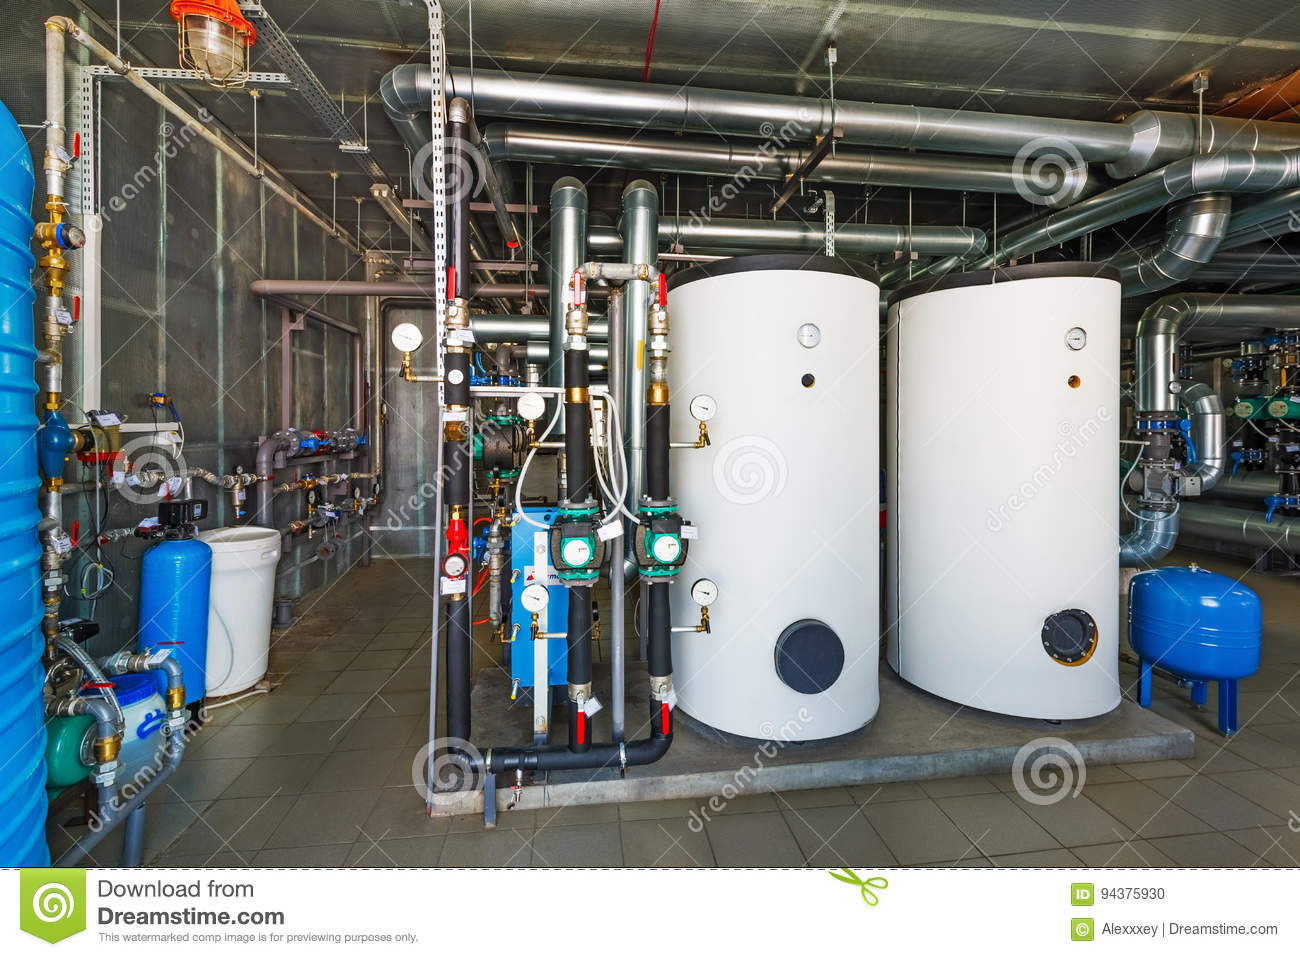 The Interior Of A Modern Gas Boiler House With Pumps, Valves, A ...